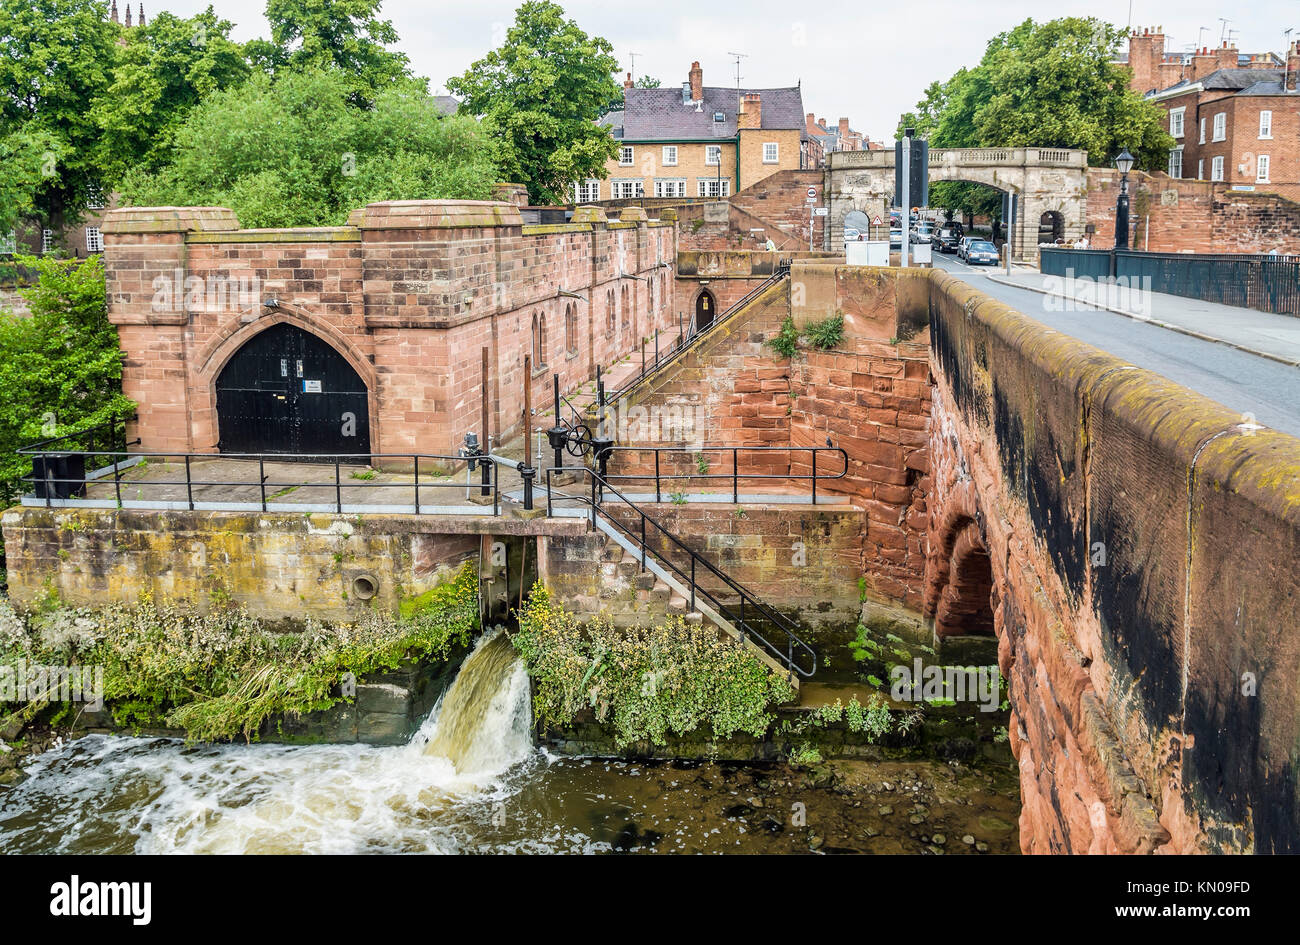 Hydroelectric power station next to the Old Dee Bridge at the River Dee that replaced the Old Dee Mills in Chester, - Stock Image